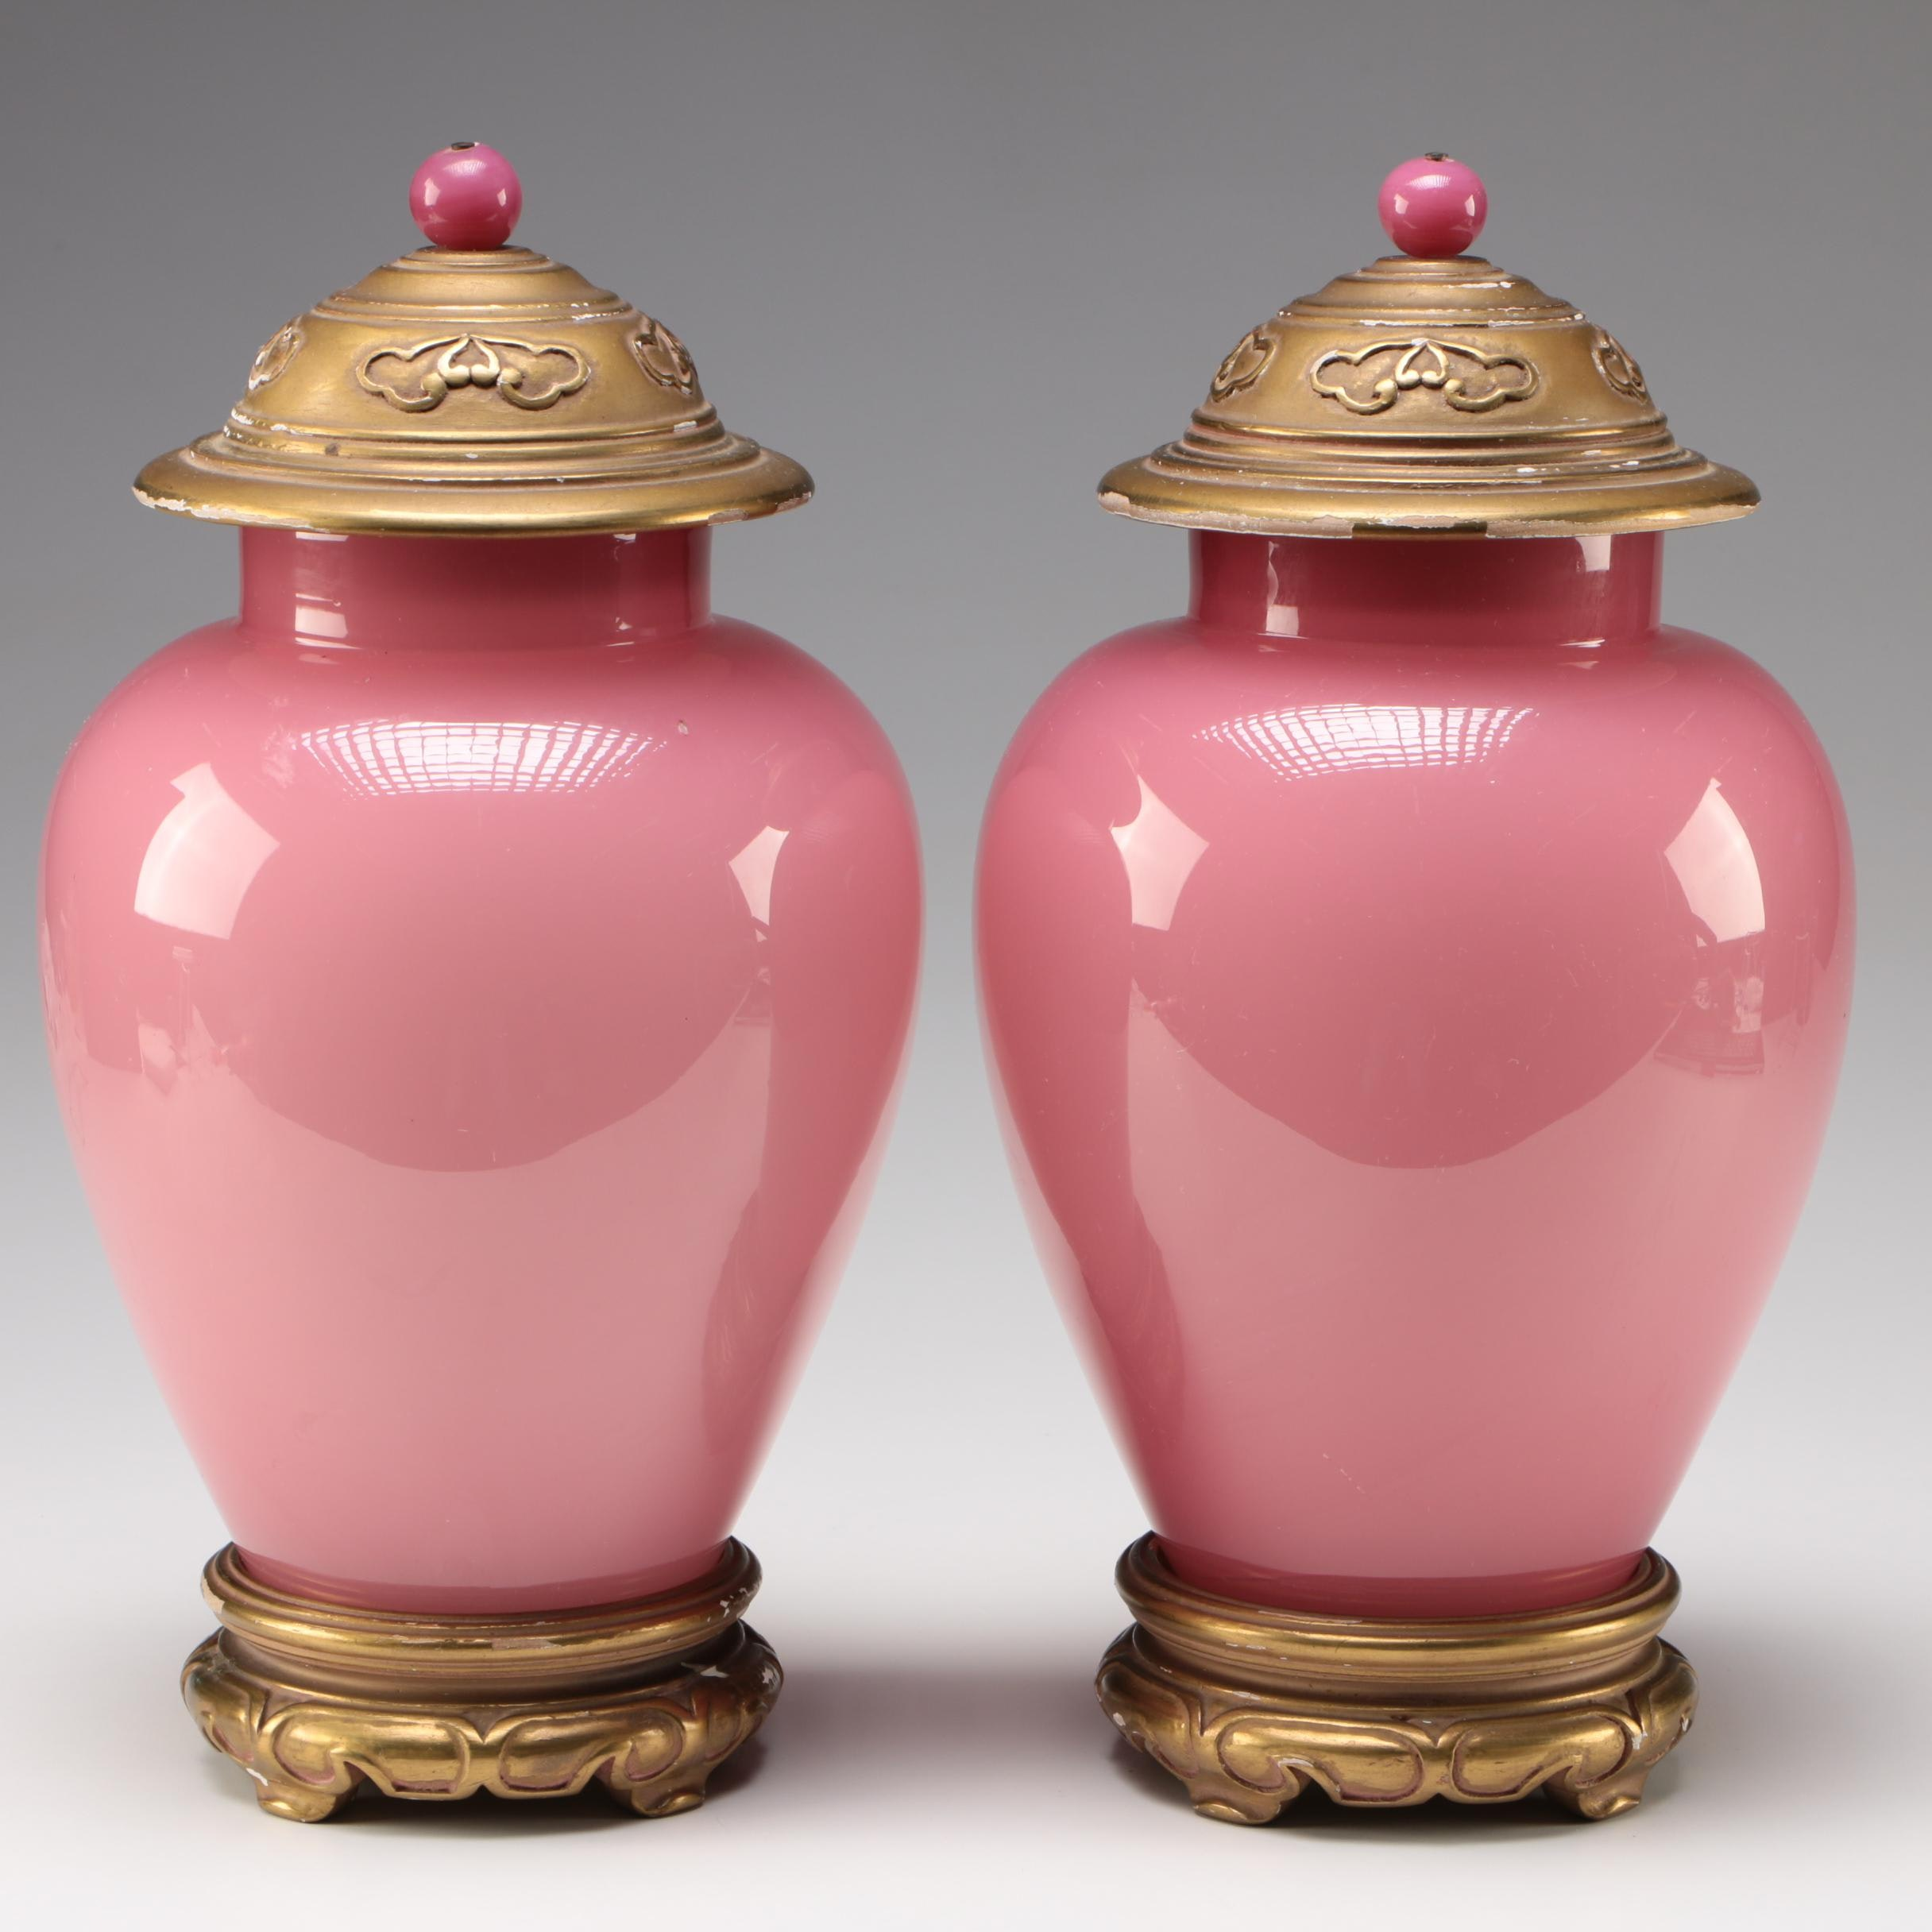 Pair of Steuben Rosaline Art Glass Covered Vases on Stands, 1903 - 1933